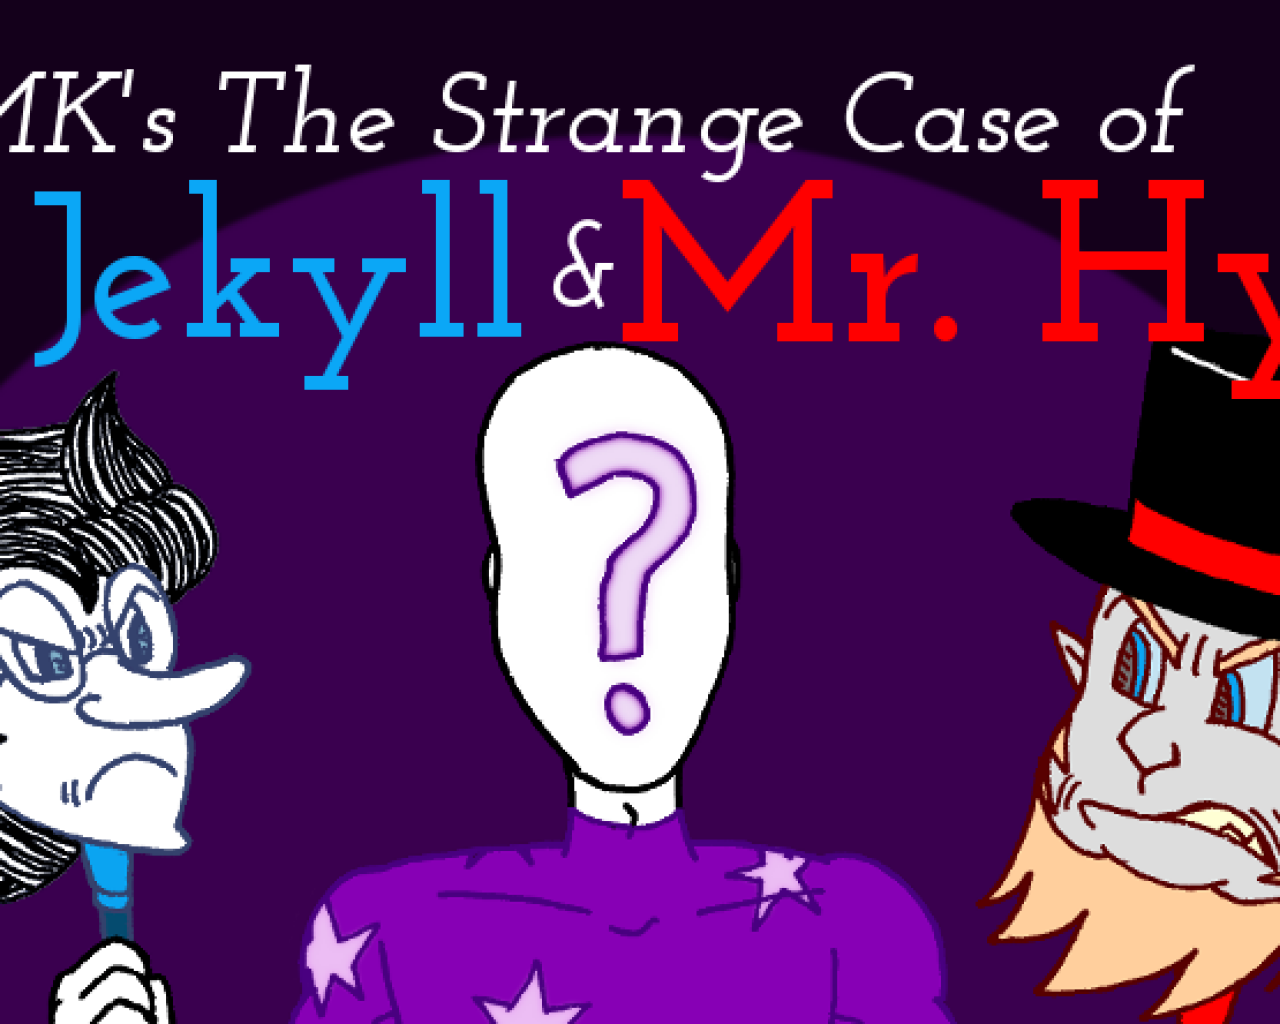 Poster Image for MK's The Strange Case of Dr. Jekyll and Mr. Hyde